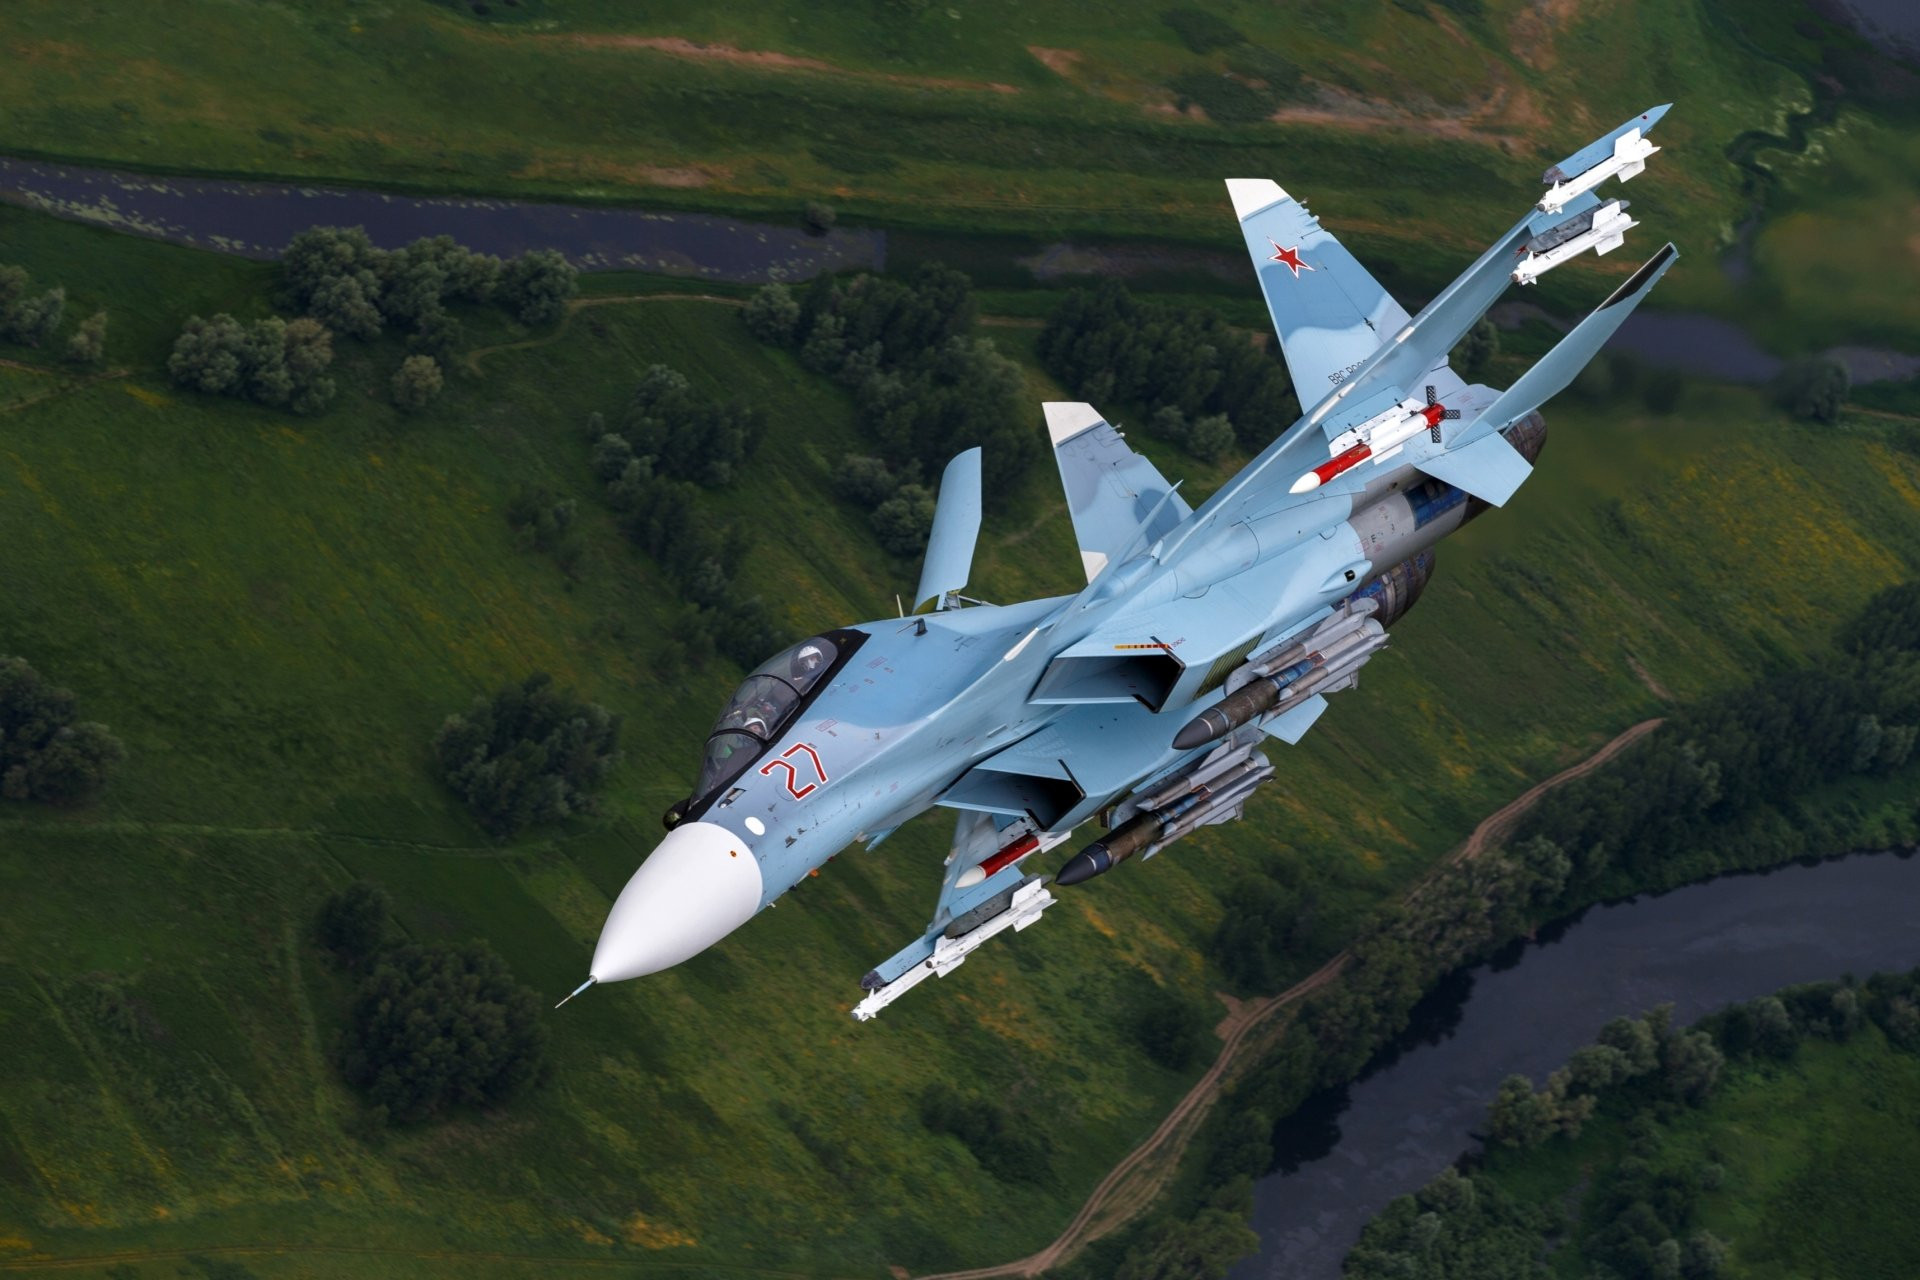 military picture sukhoi su - photo #23